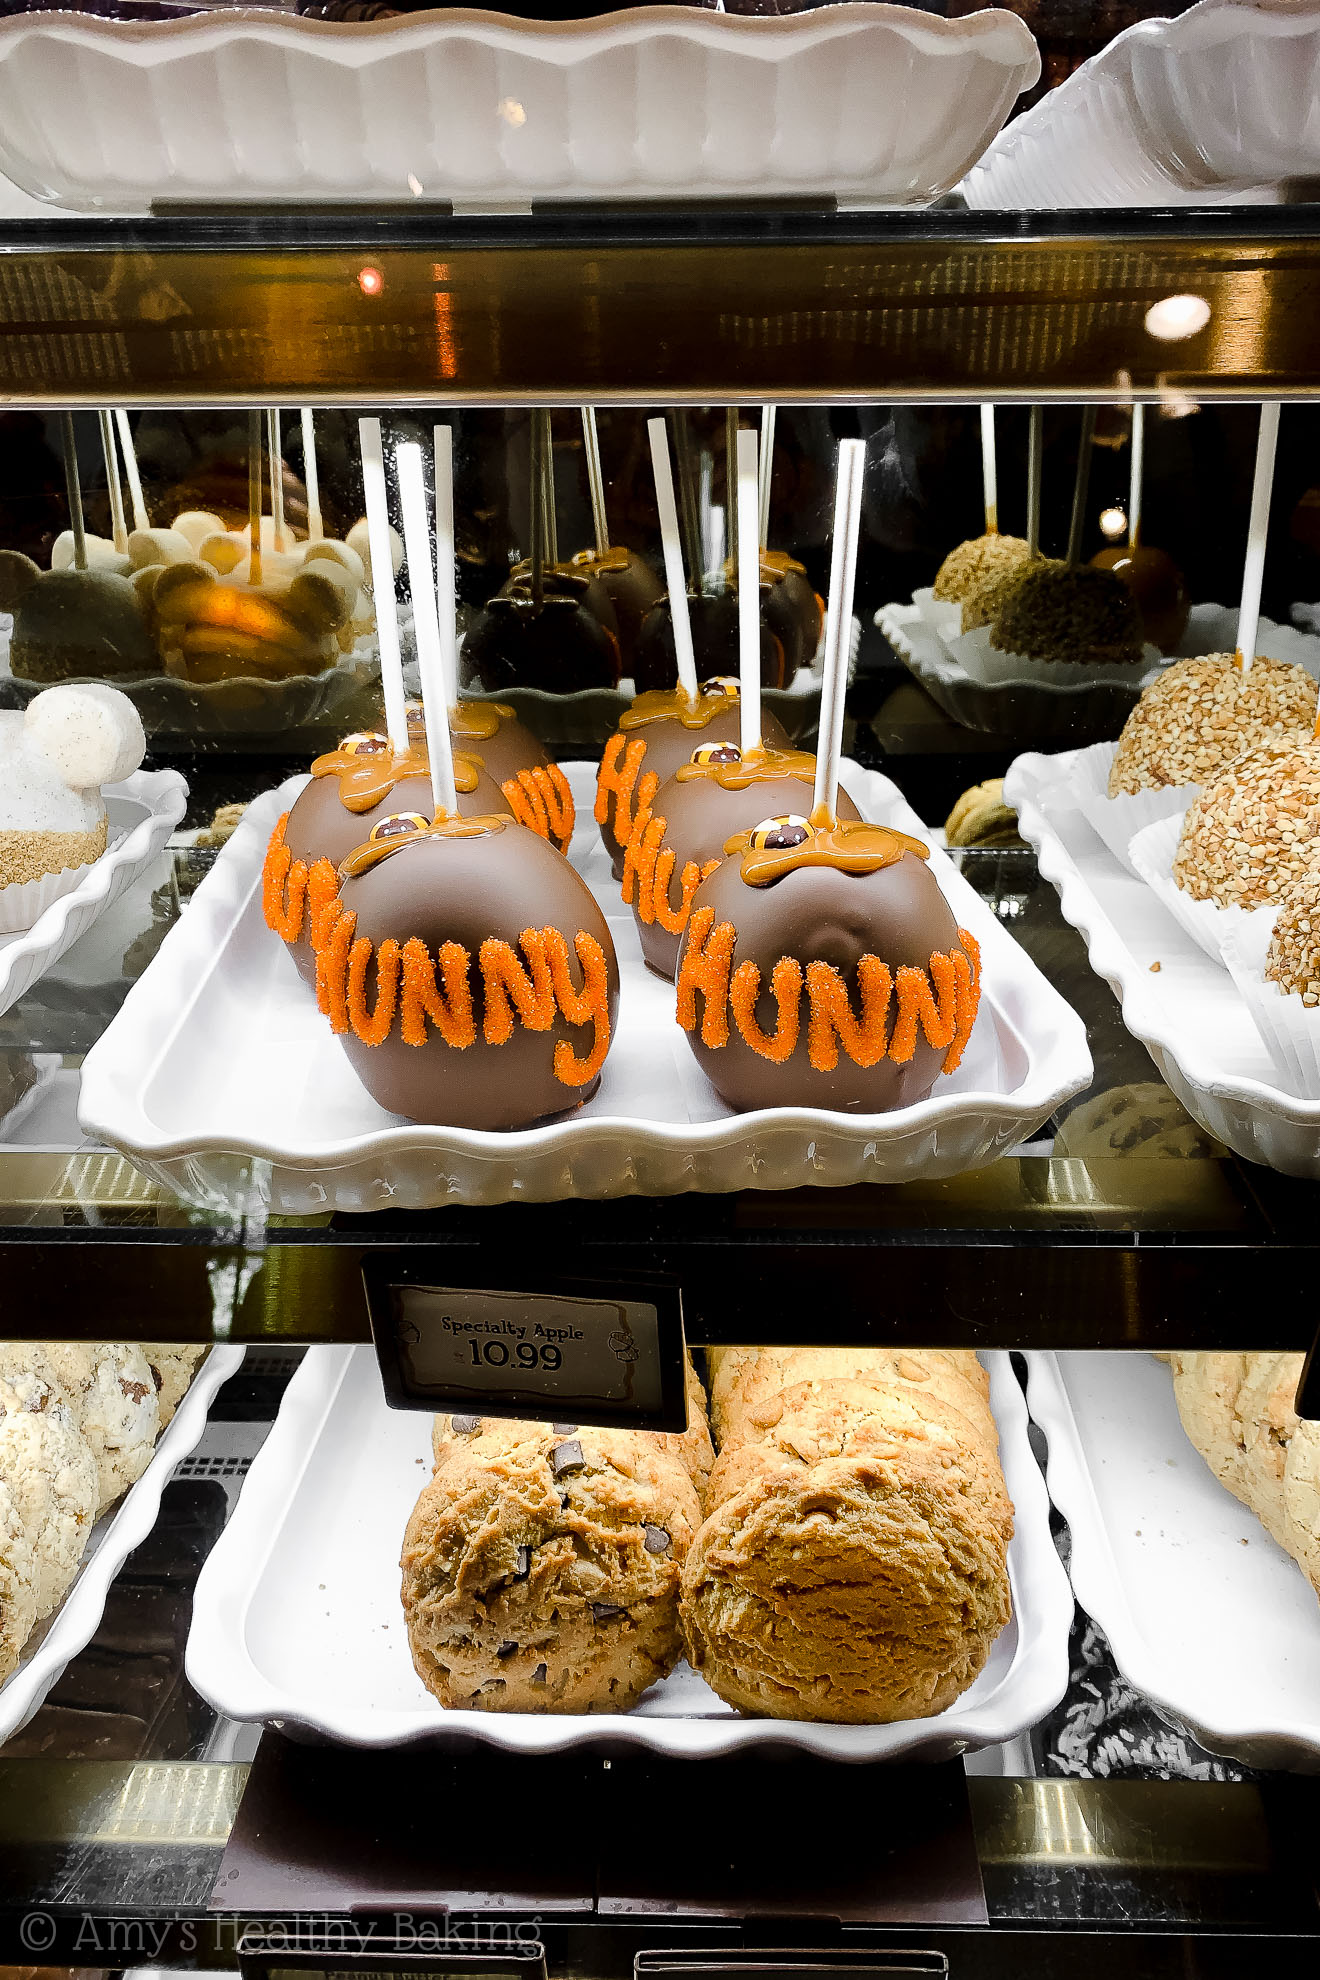 Pooh Bear themed caramel apples in Disneyland - Anaheim, California